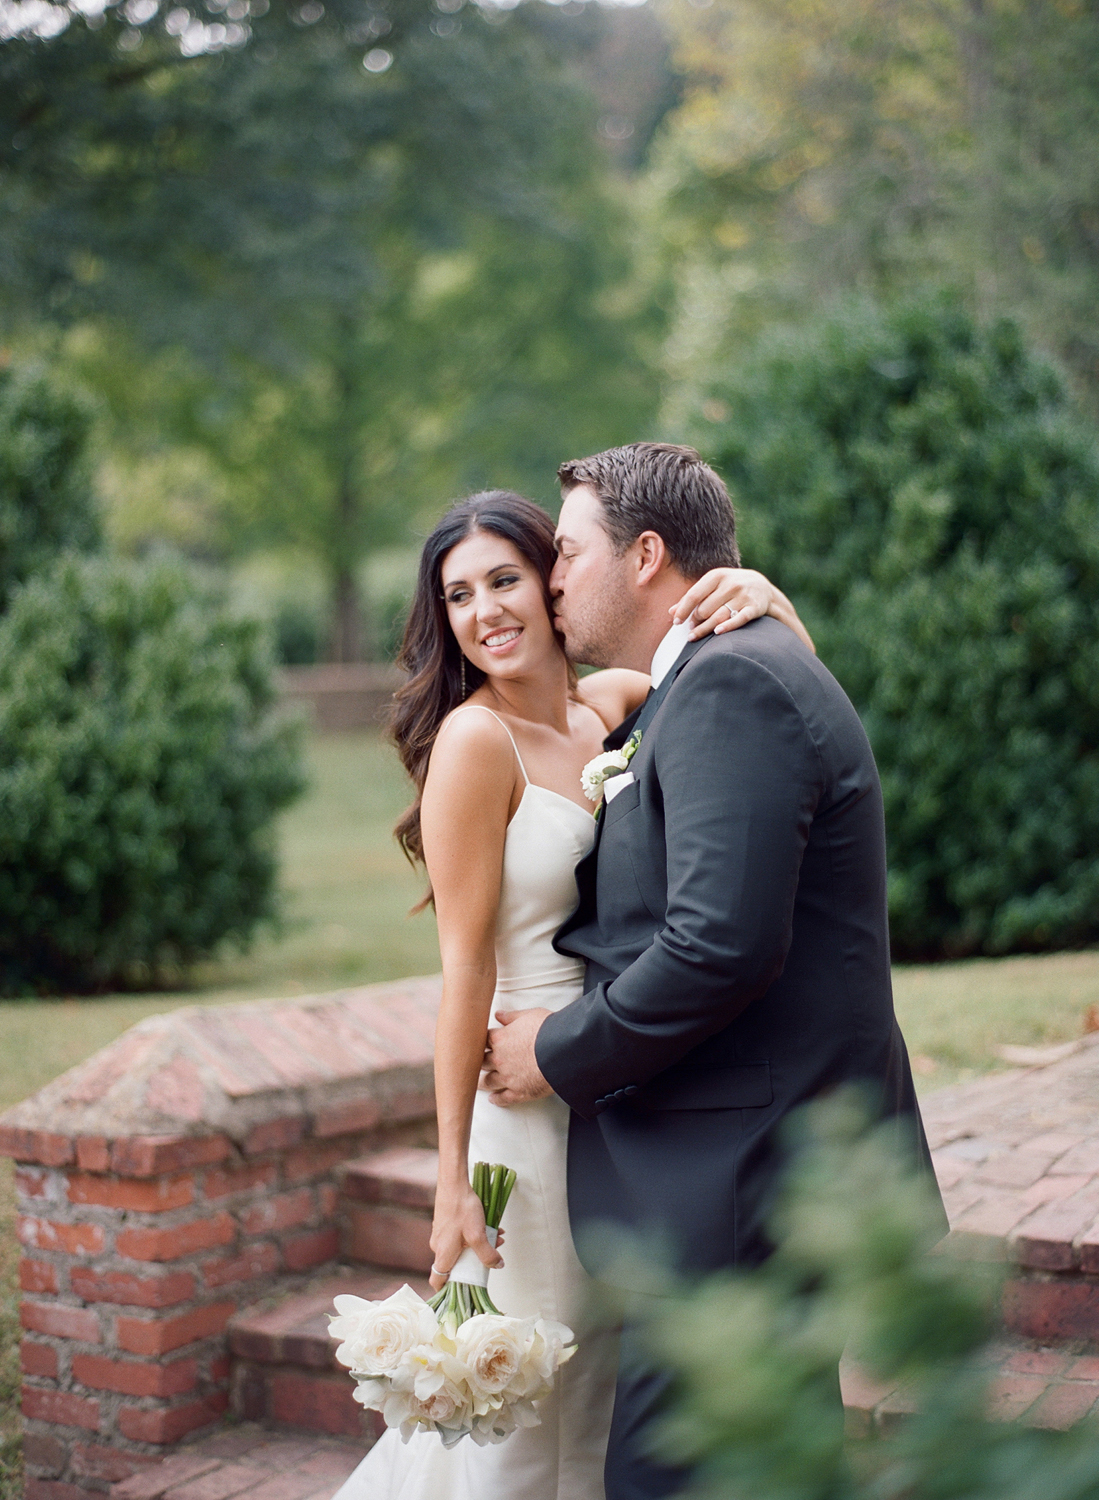 reviews on Audra Wrisley, Washington DC wedding photographer